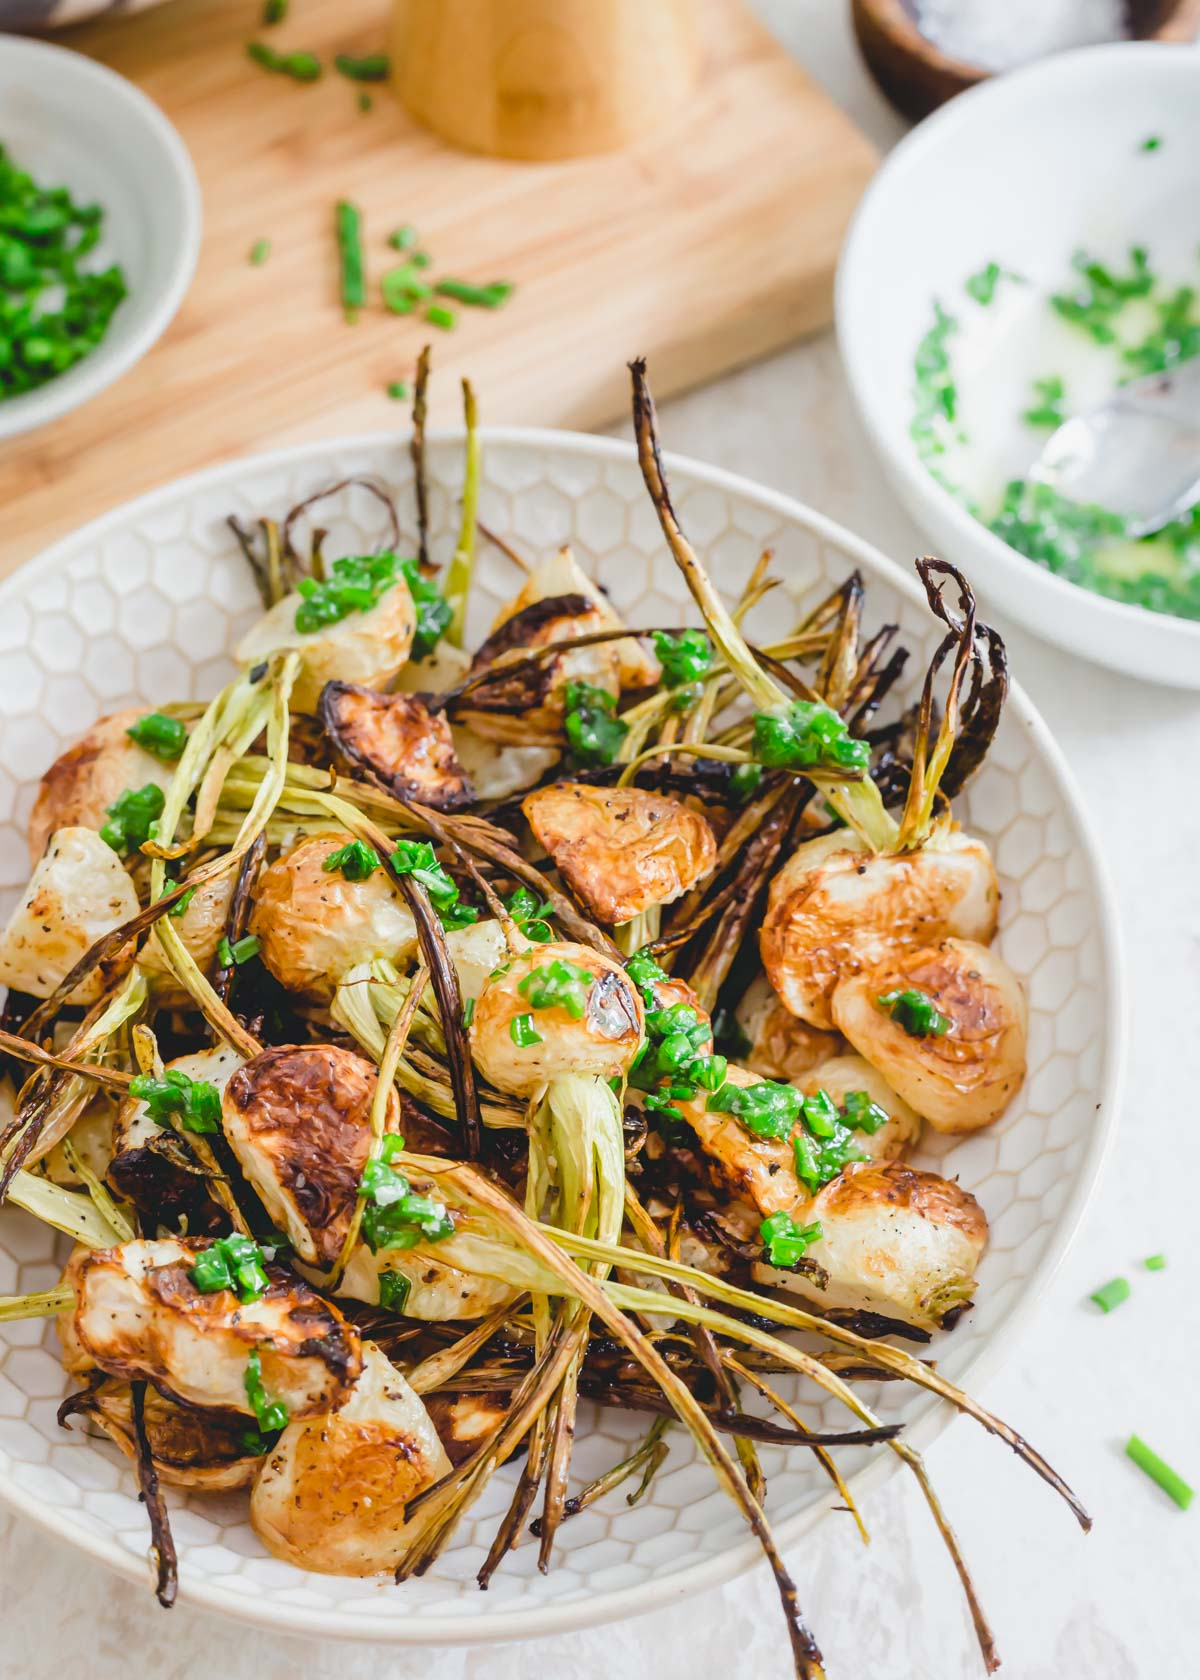 Crispy roasted white turnips with stems drizzled in a melted butter chive sauce.